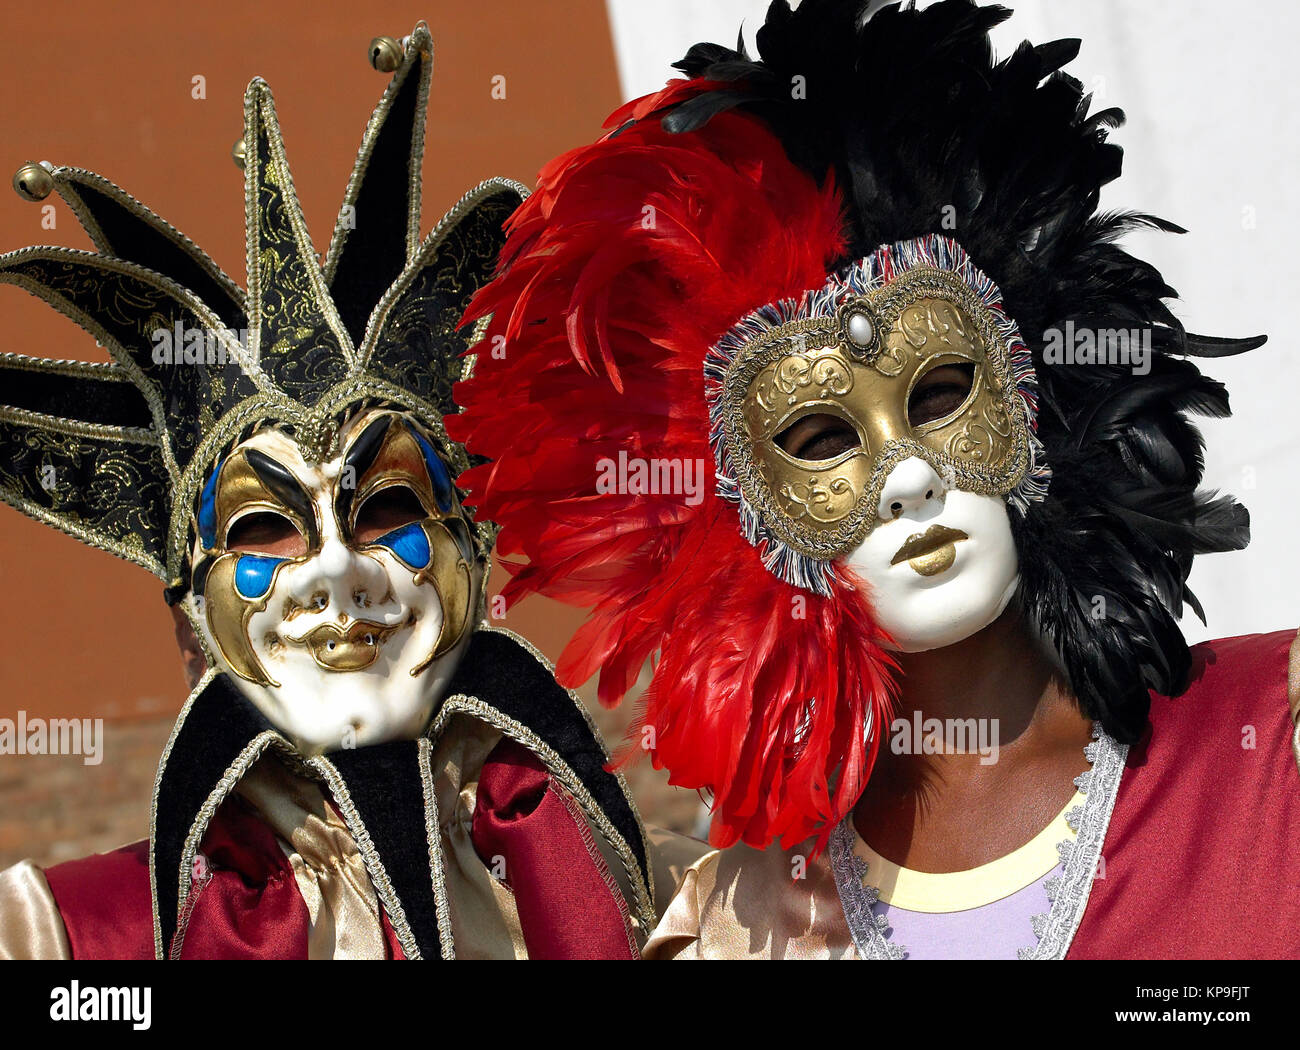 Masked figures at the Venice Carnival in the city of Venice in northern Italy. - Stock Image